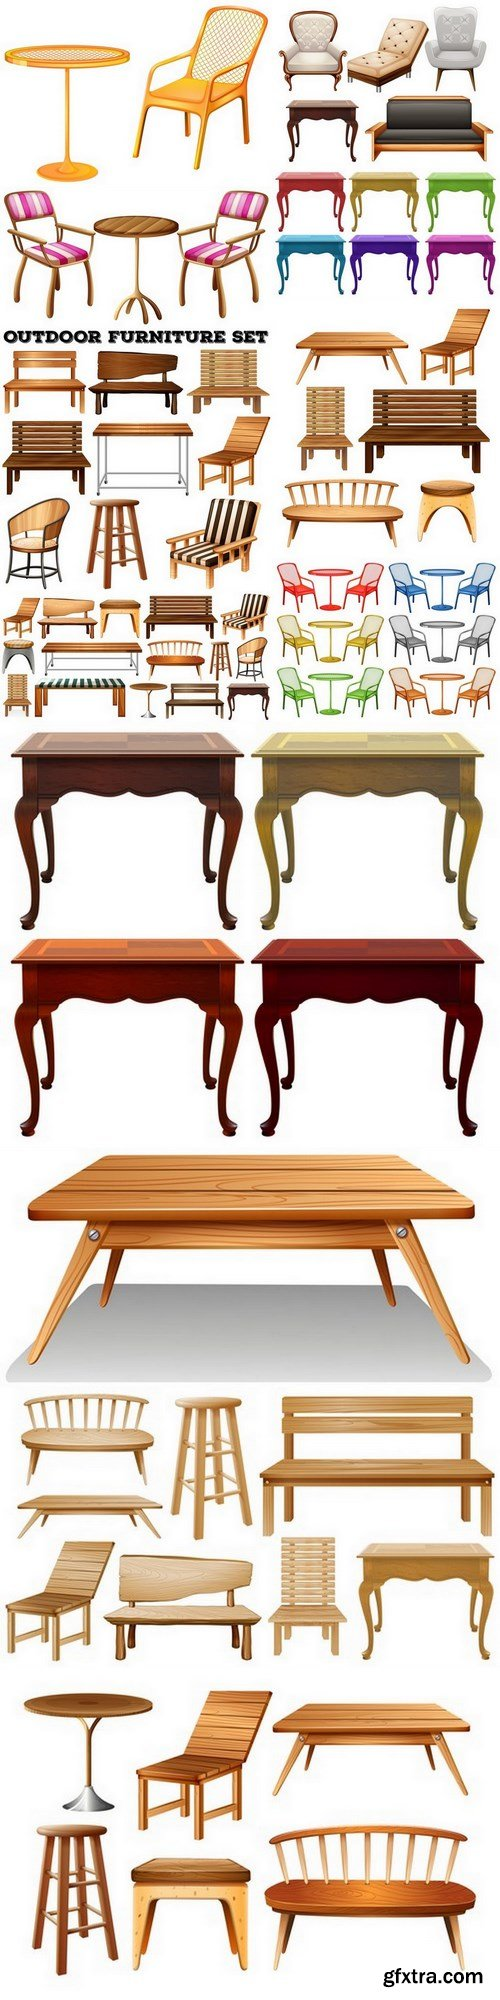 Furniture - 12 EPS Vector Stock